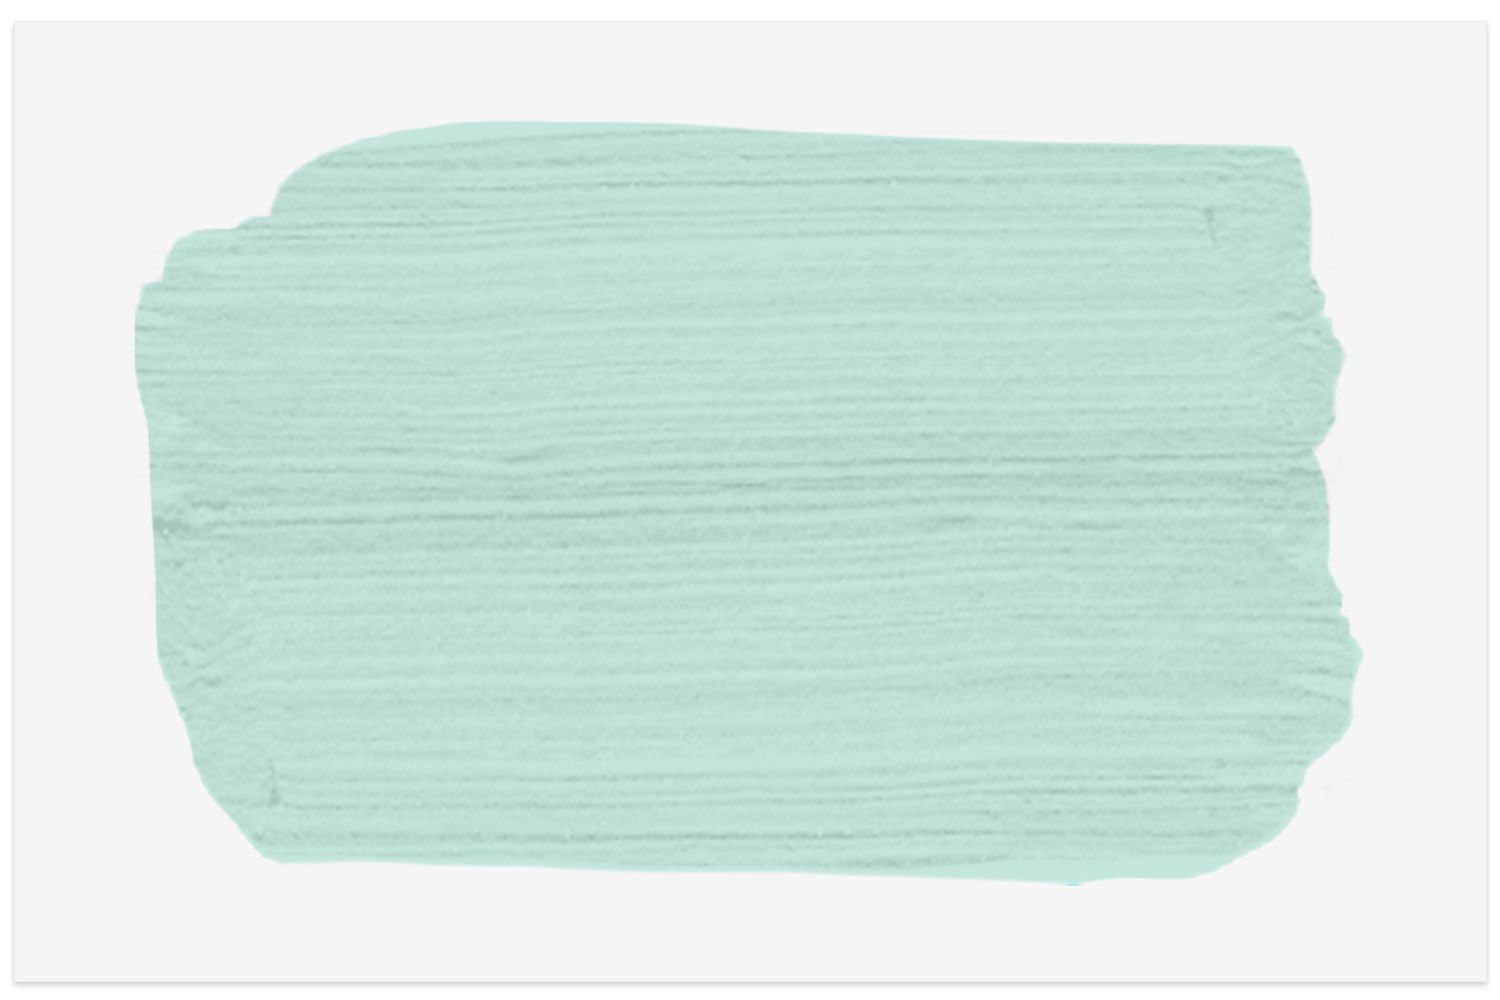 Misty Isle paint swatch from Behr